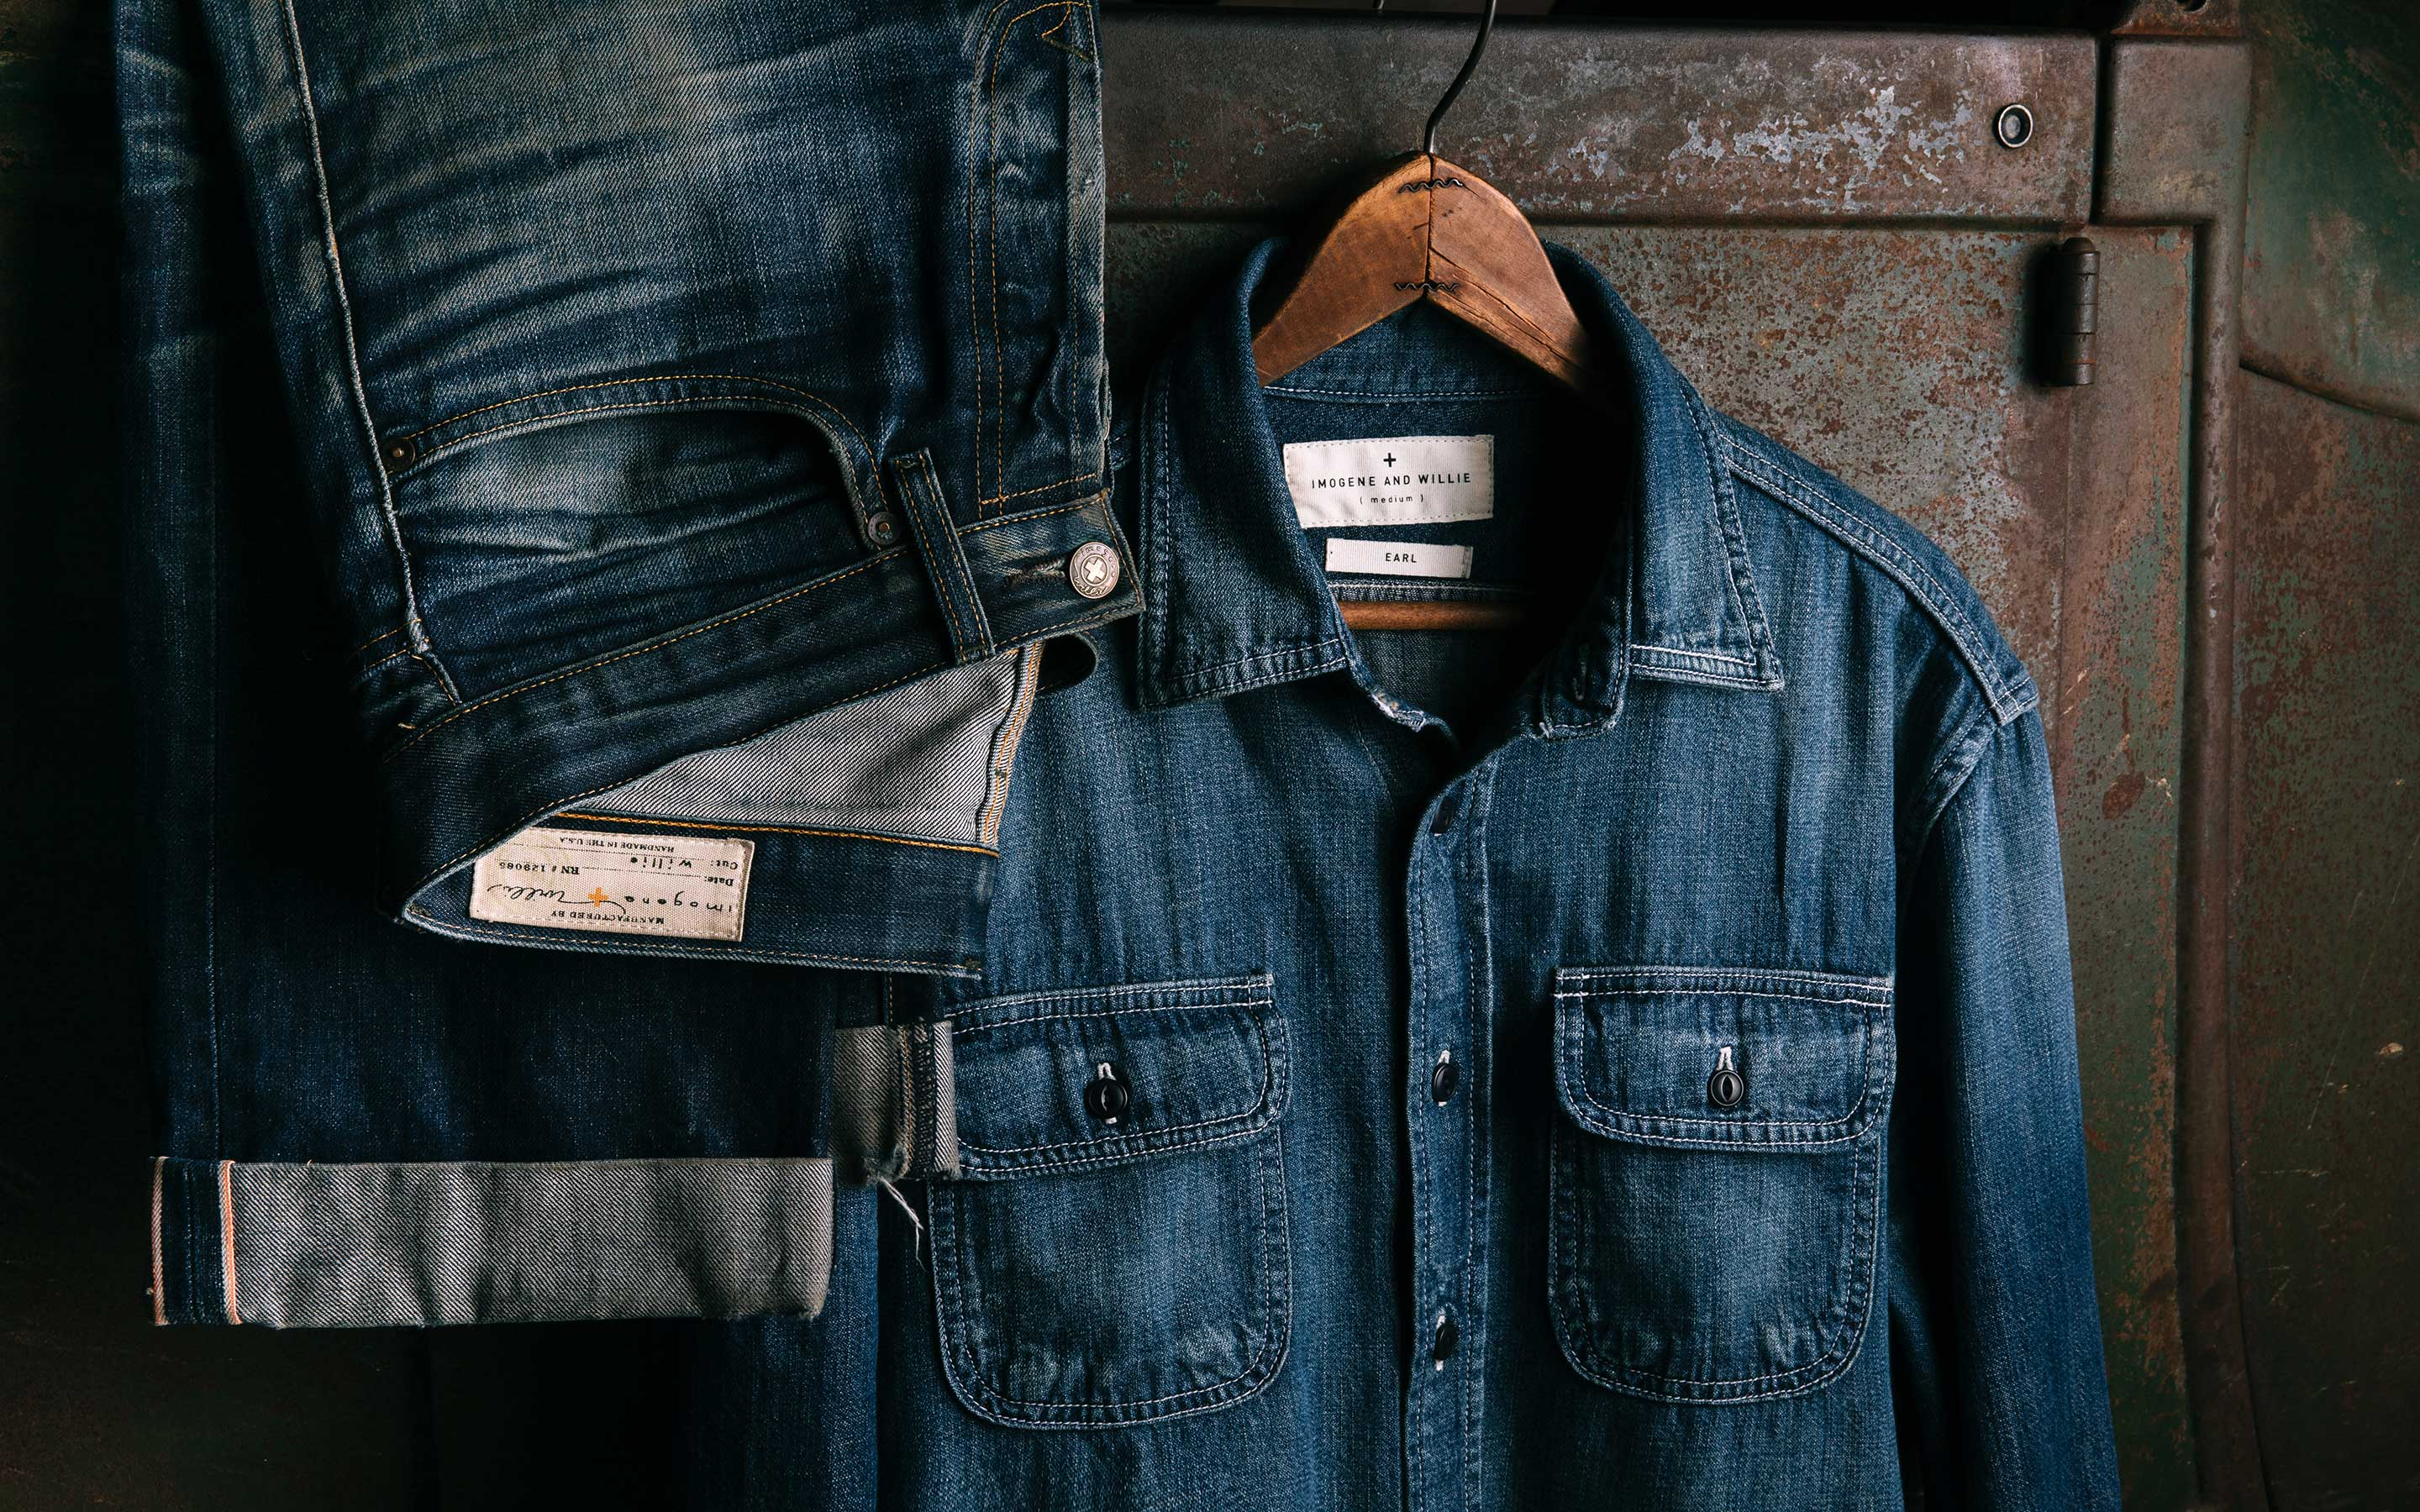 imogene + willie - earl selvage denim